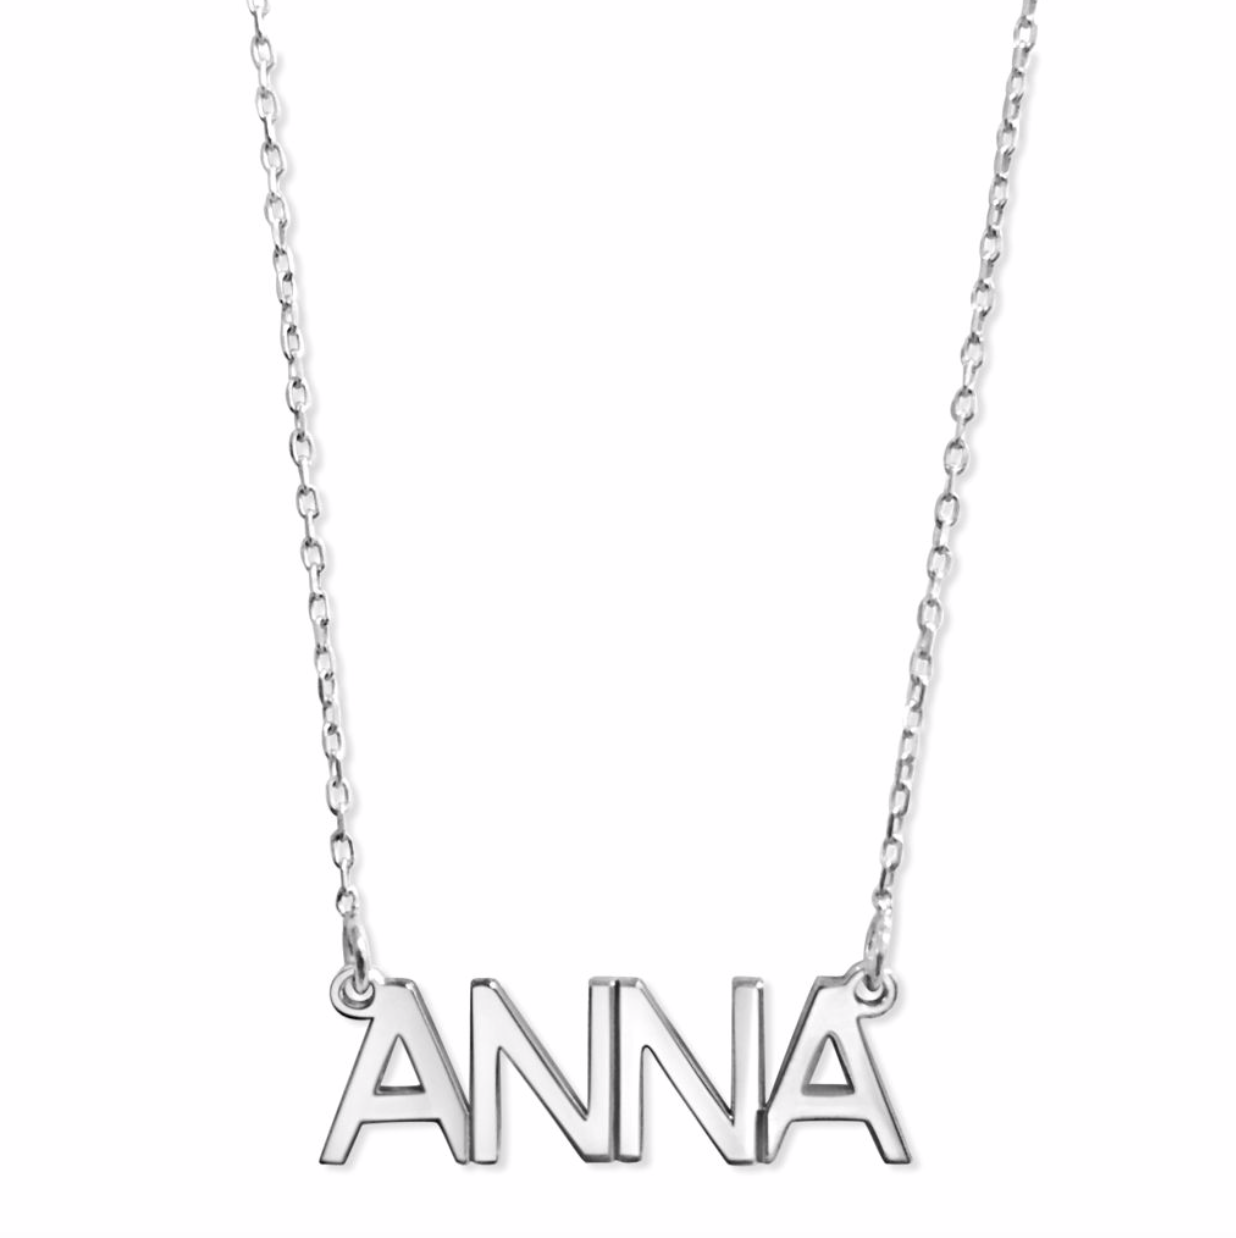 Capital Name necklace